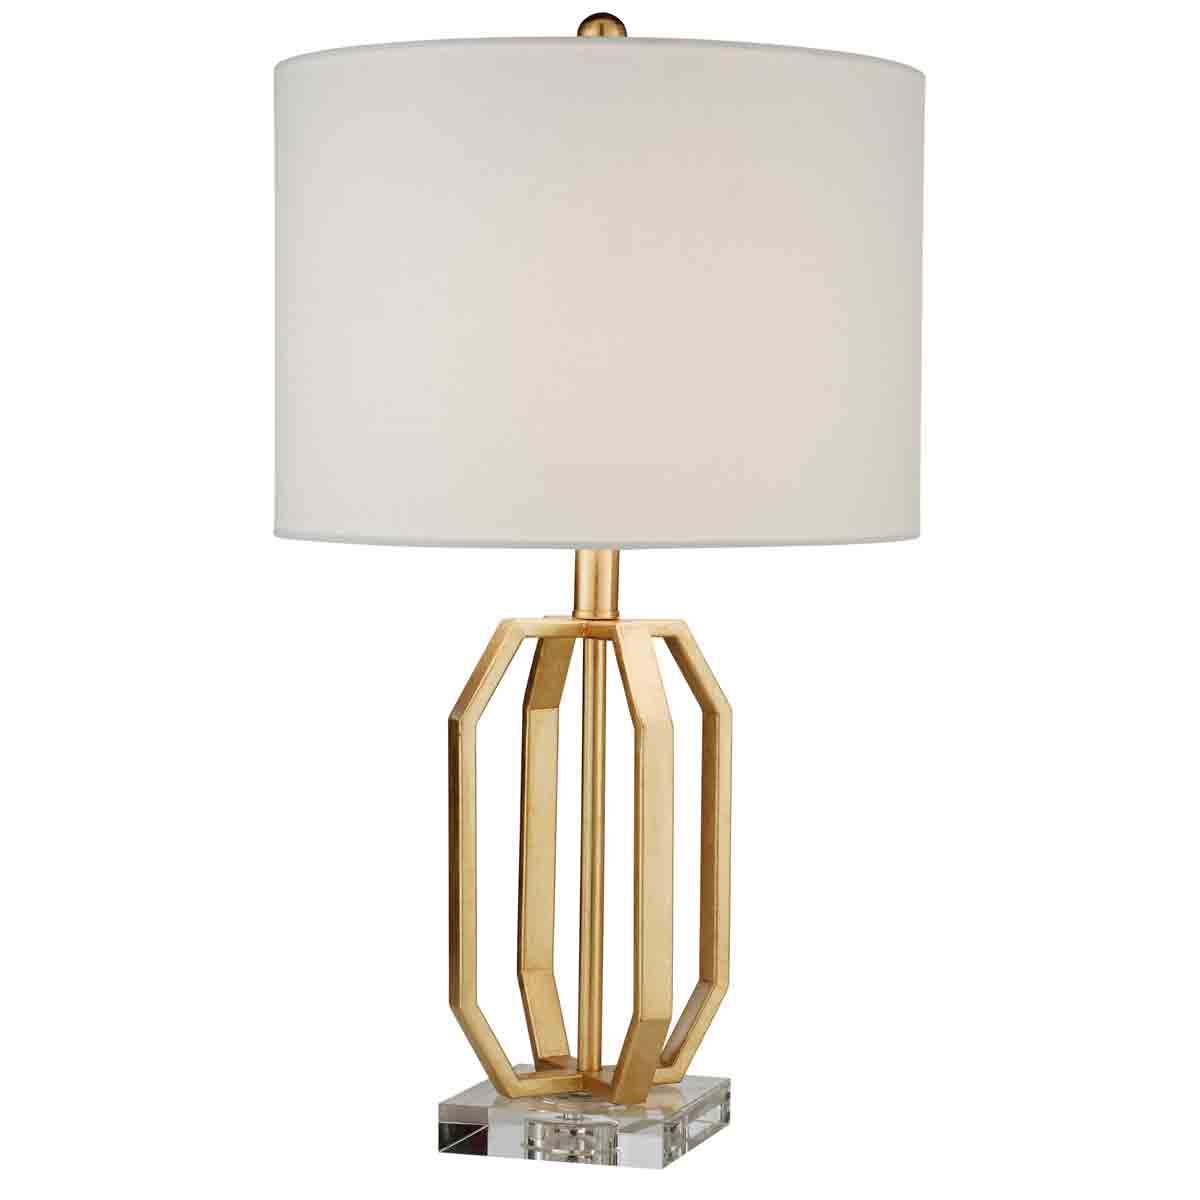 Village At Home Beatrice Table Lamp Gold